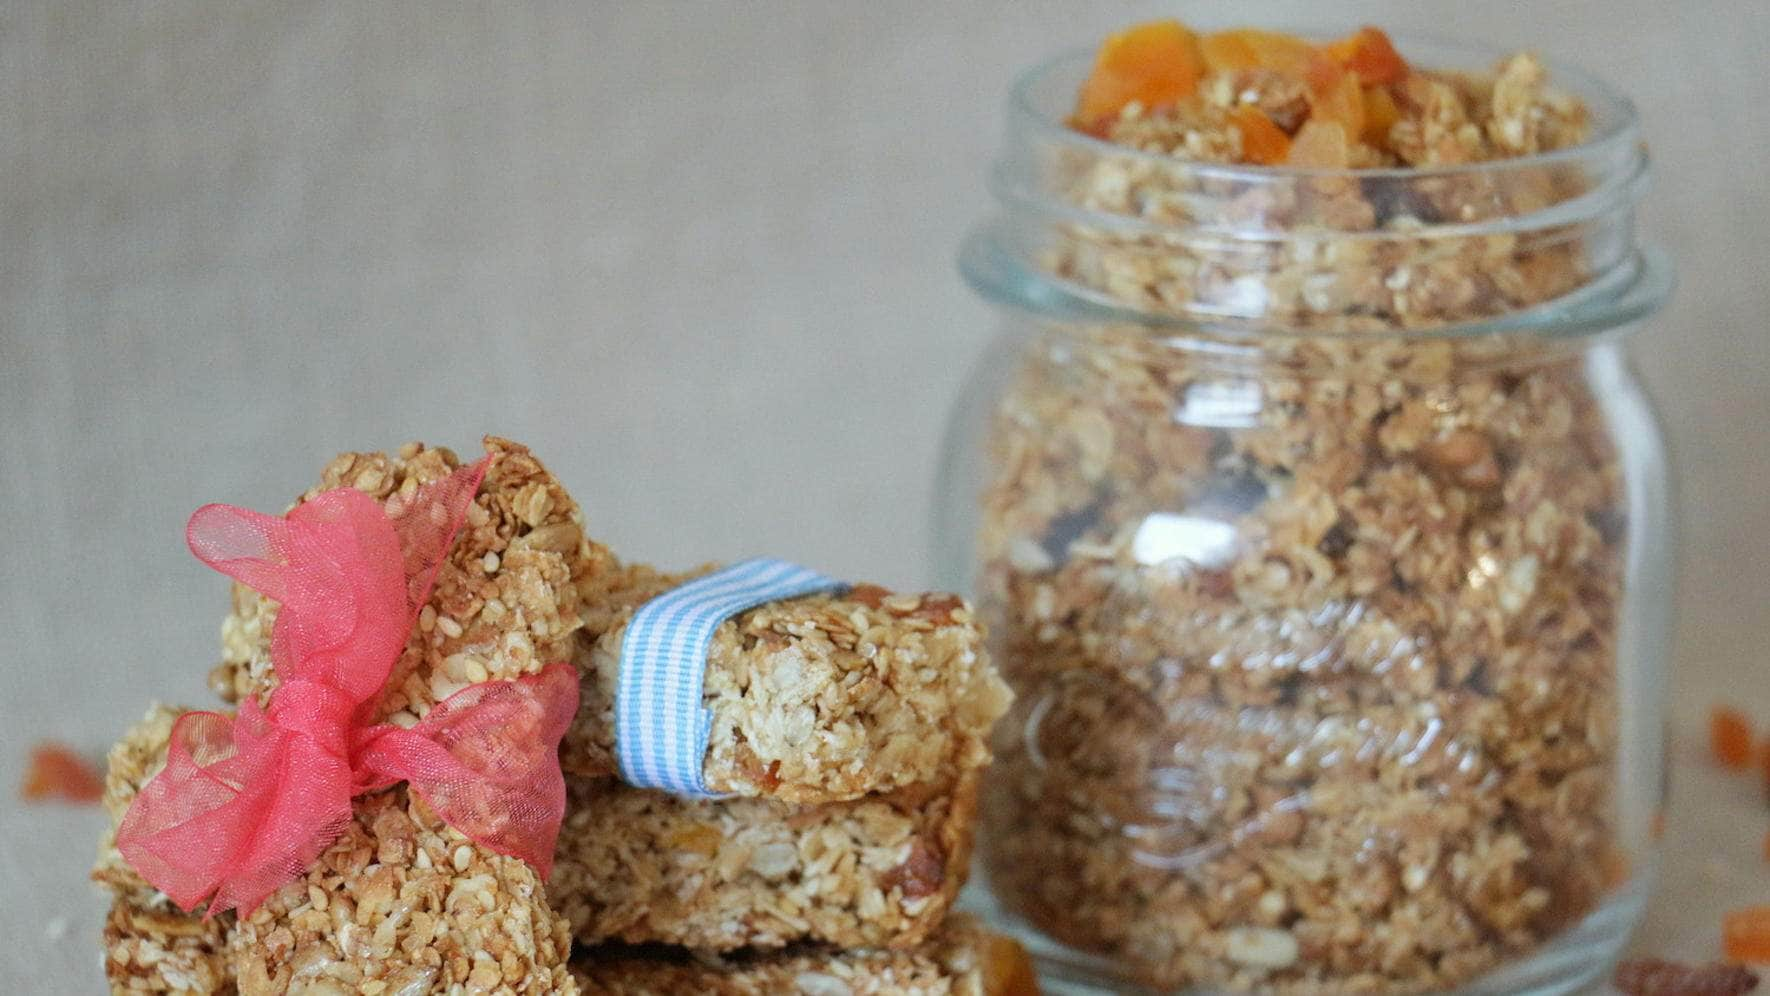 Vegan Rezepte kochen Granola-Bar Riegel Blog Zoe Torinesi cookinesi